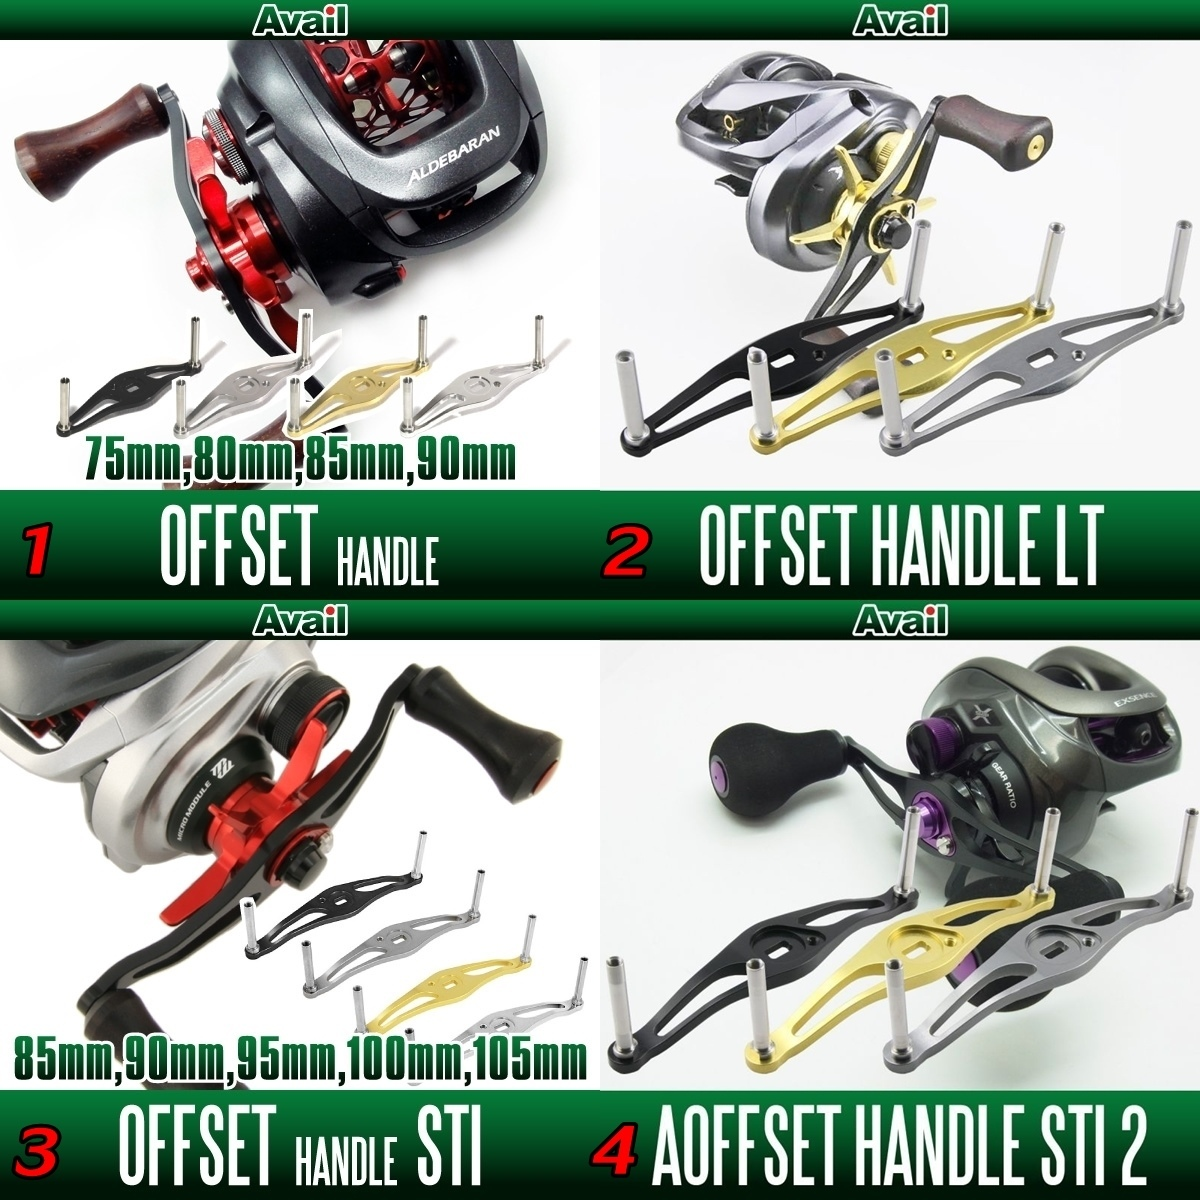 [b]แขนแต่ง Avail[/b]